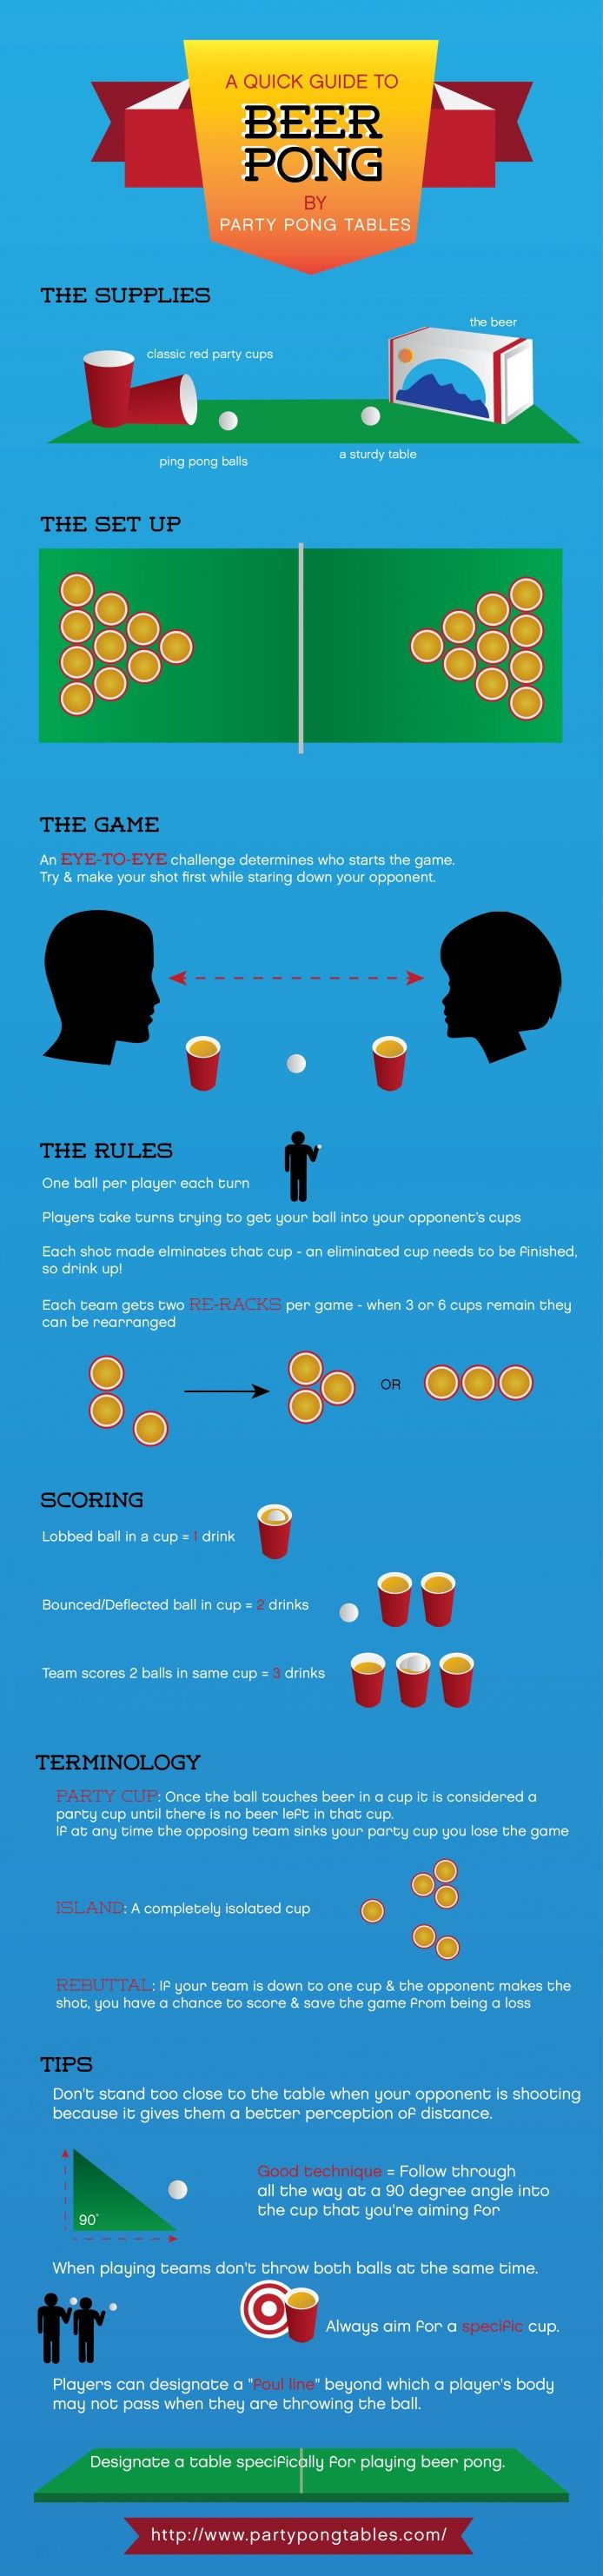 A Quick Guide to Beer Pong for Dummies Infographic